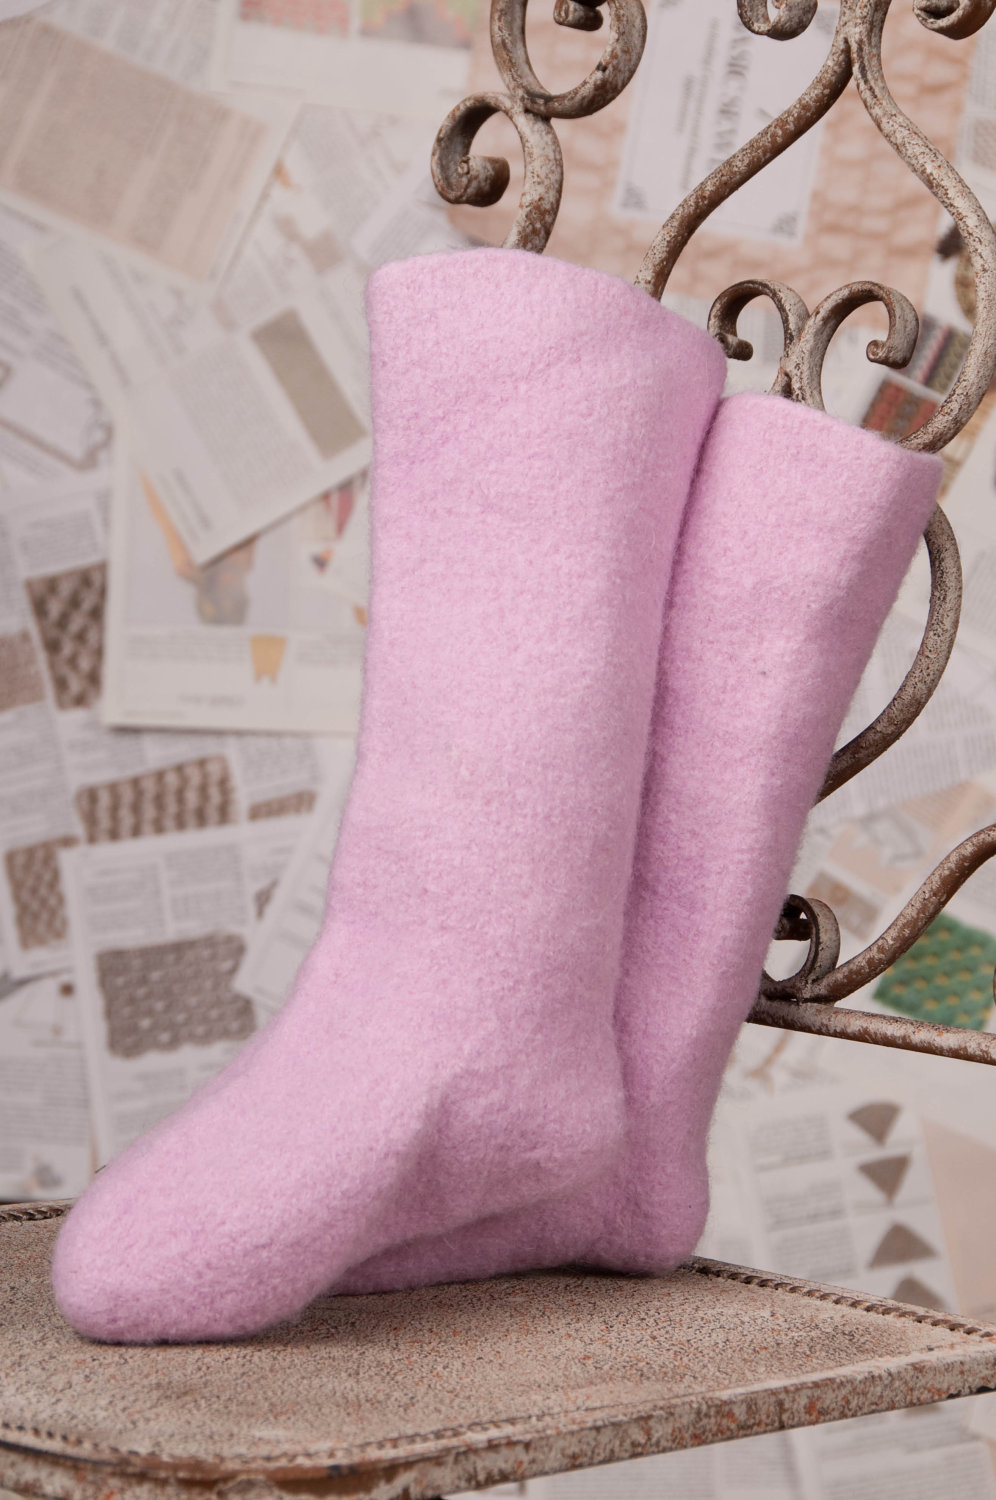 slipper-boots3 Best 10 Ideas for Choosing Winter Gifts